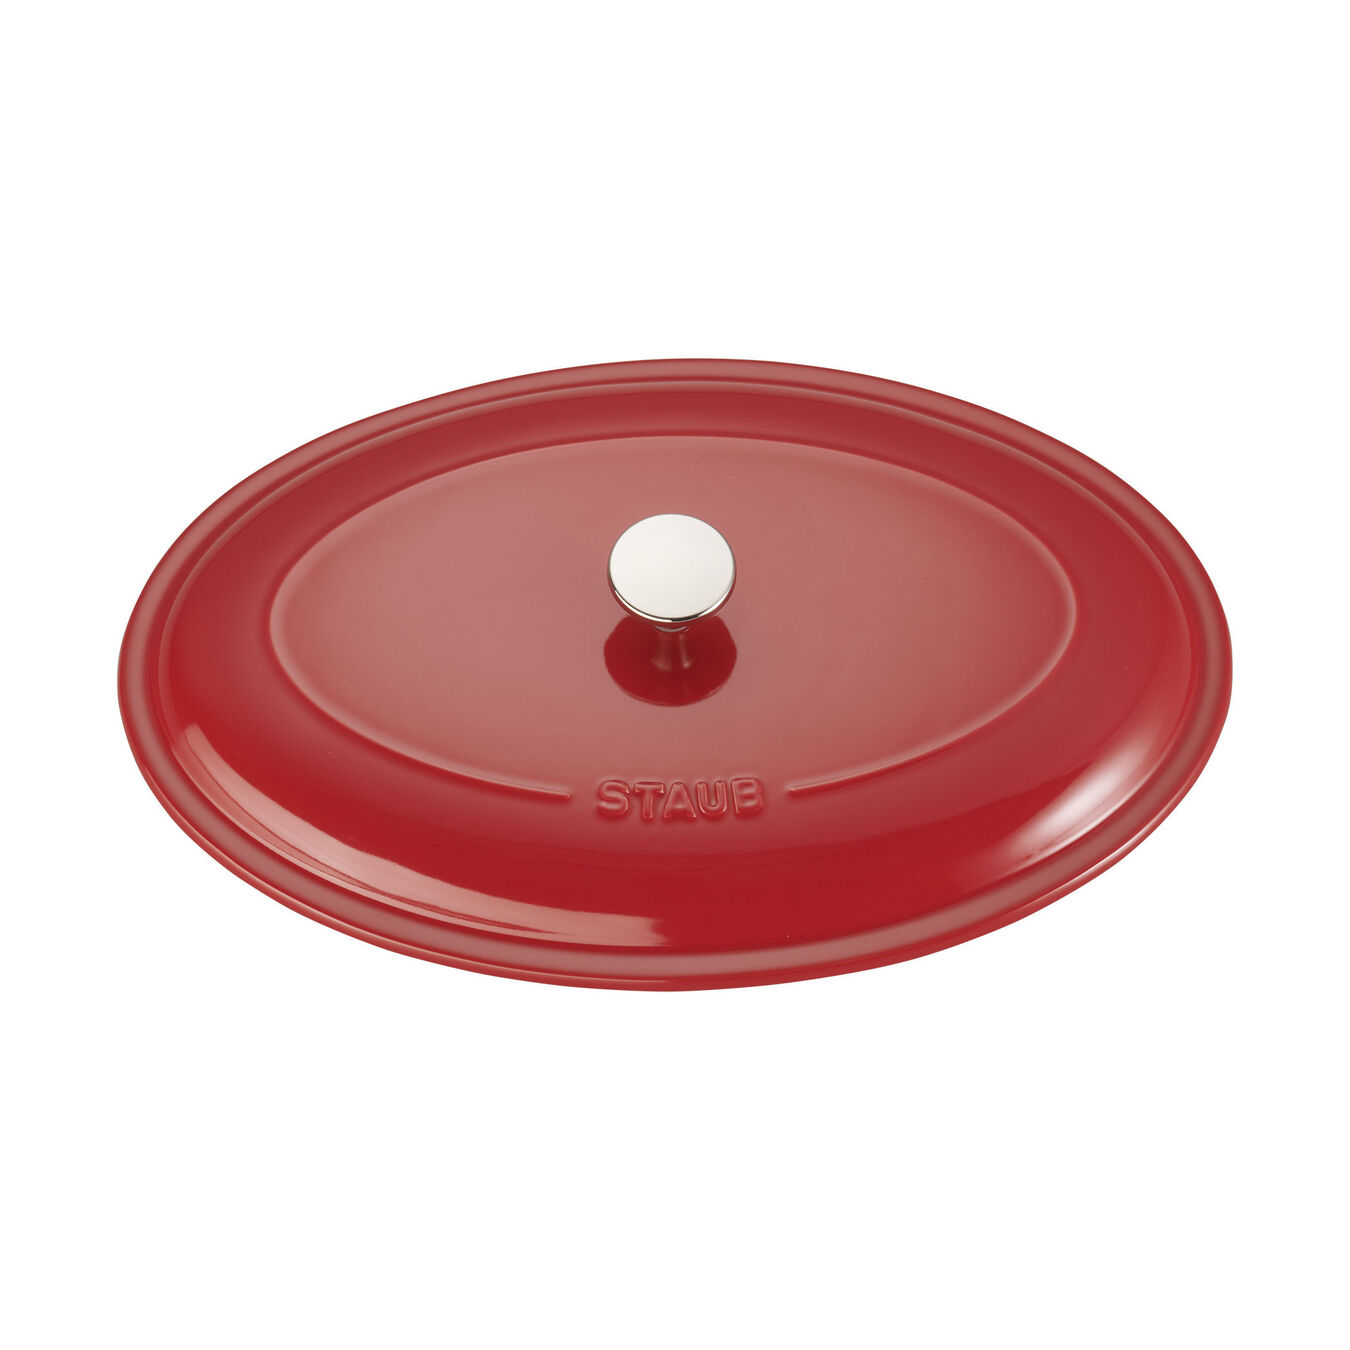 14-inch Oval Covered Baking Dish - Cherry,,large 4